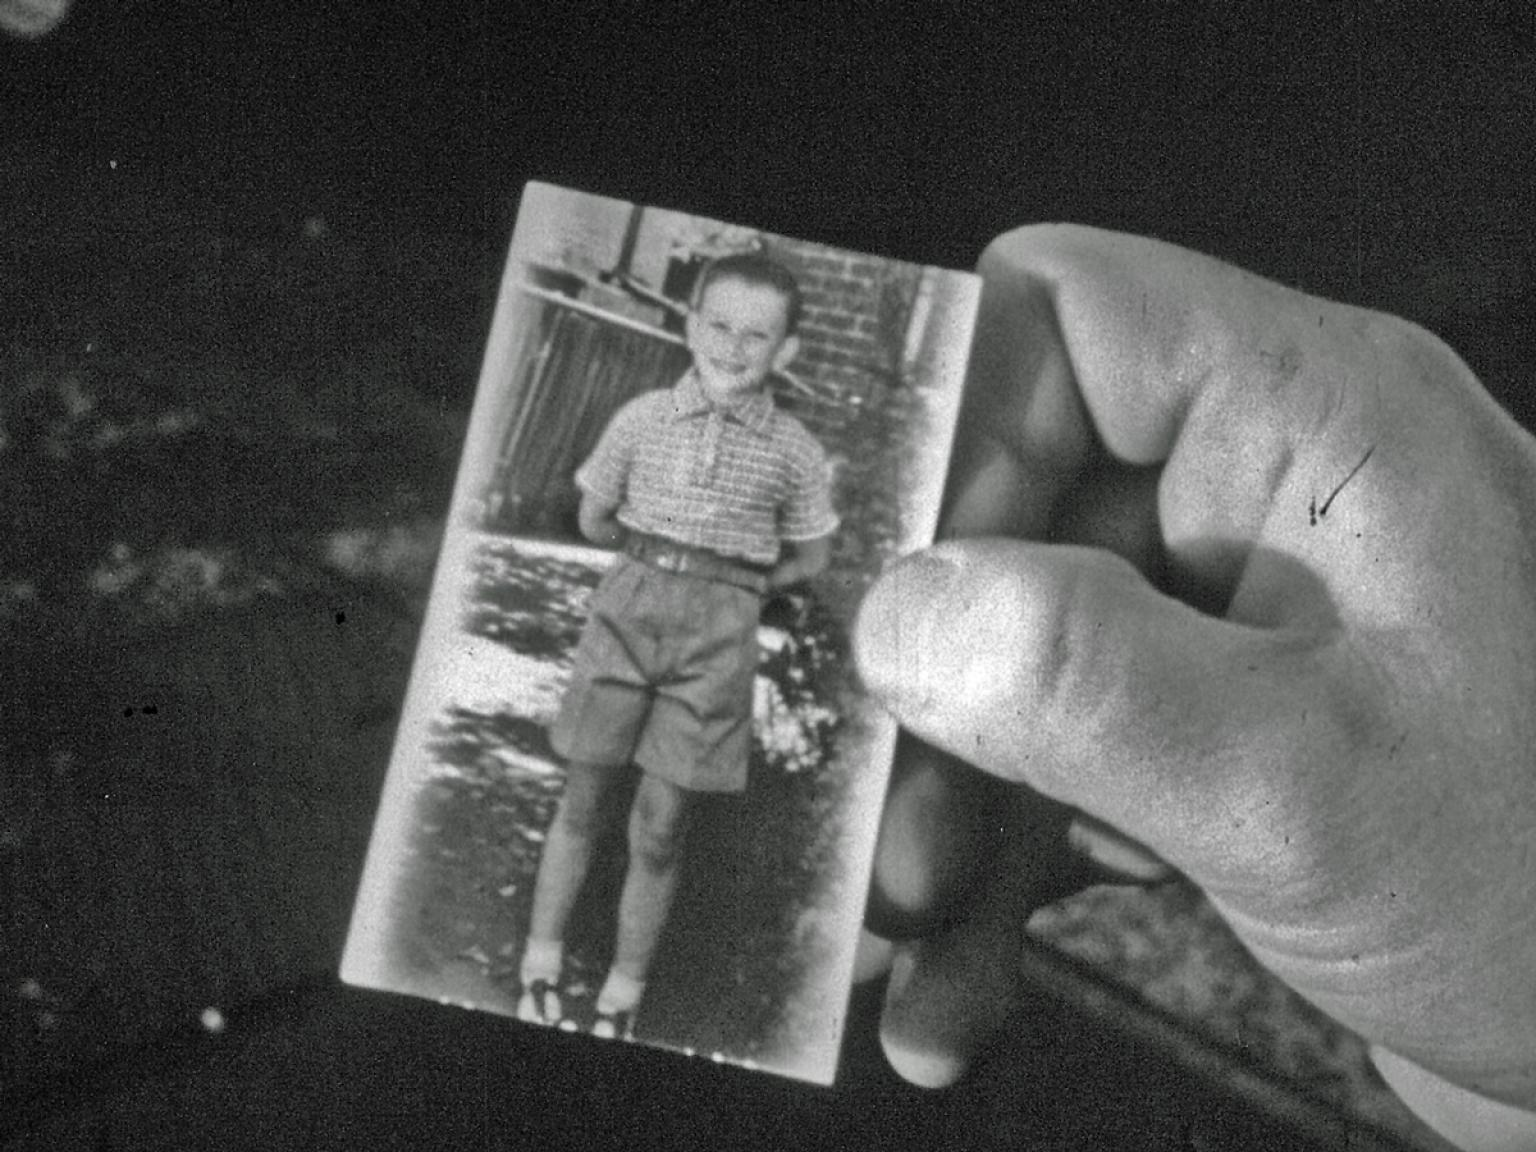 A close up of a man's hand holding a small photograph of a young boy. The boy in the photograph is wearing a shirt and shorts and is smiling directly at the camera.